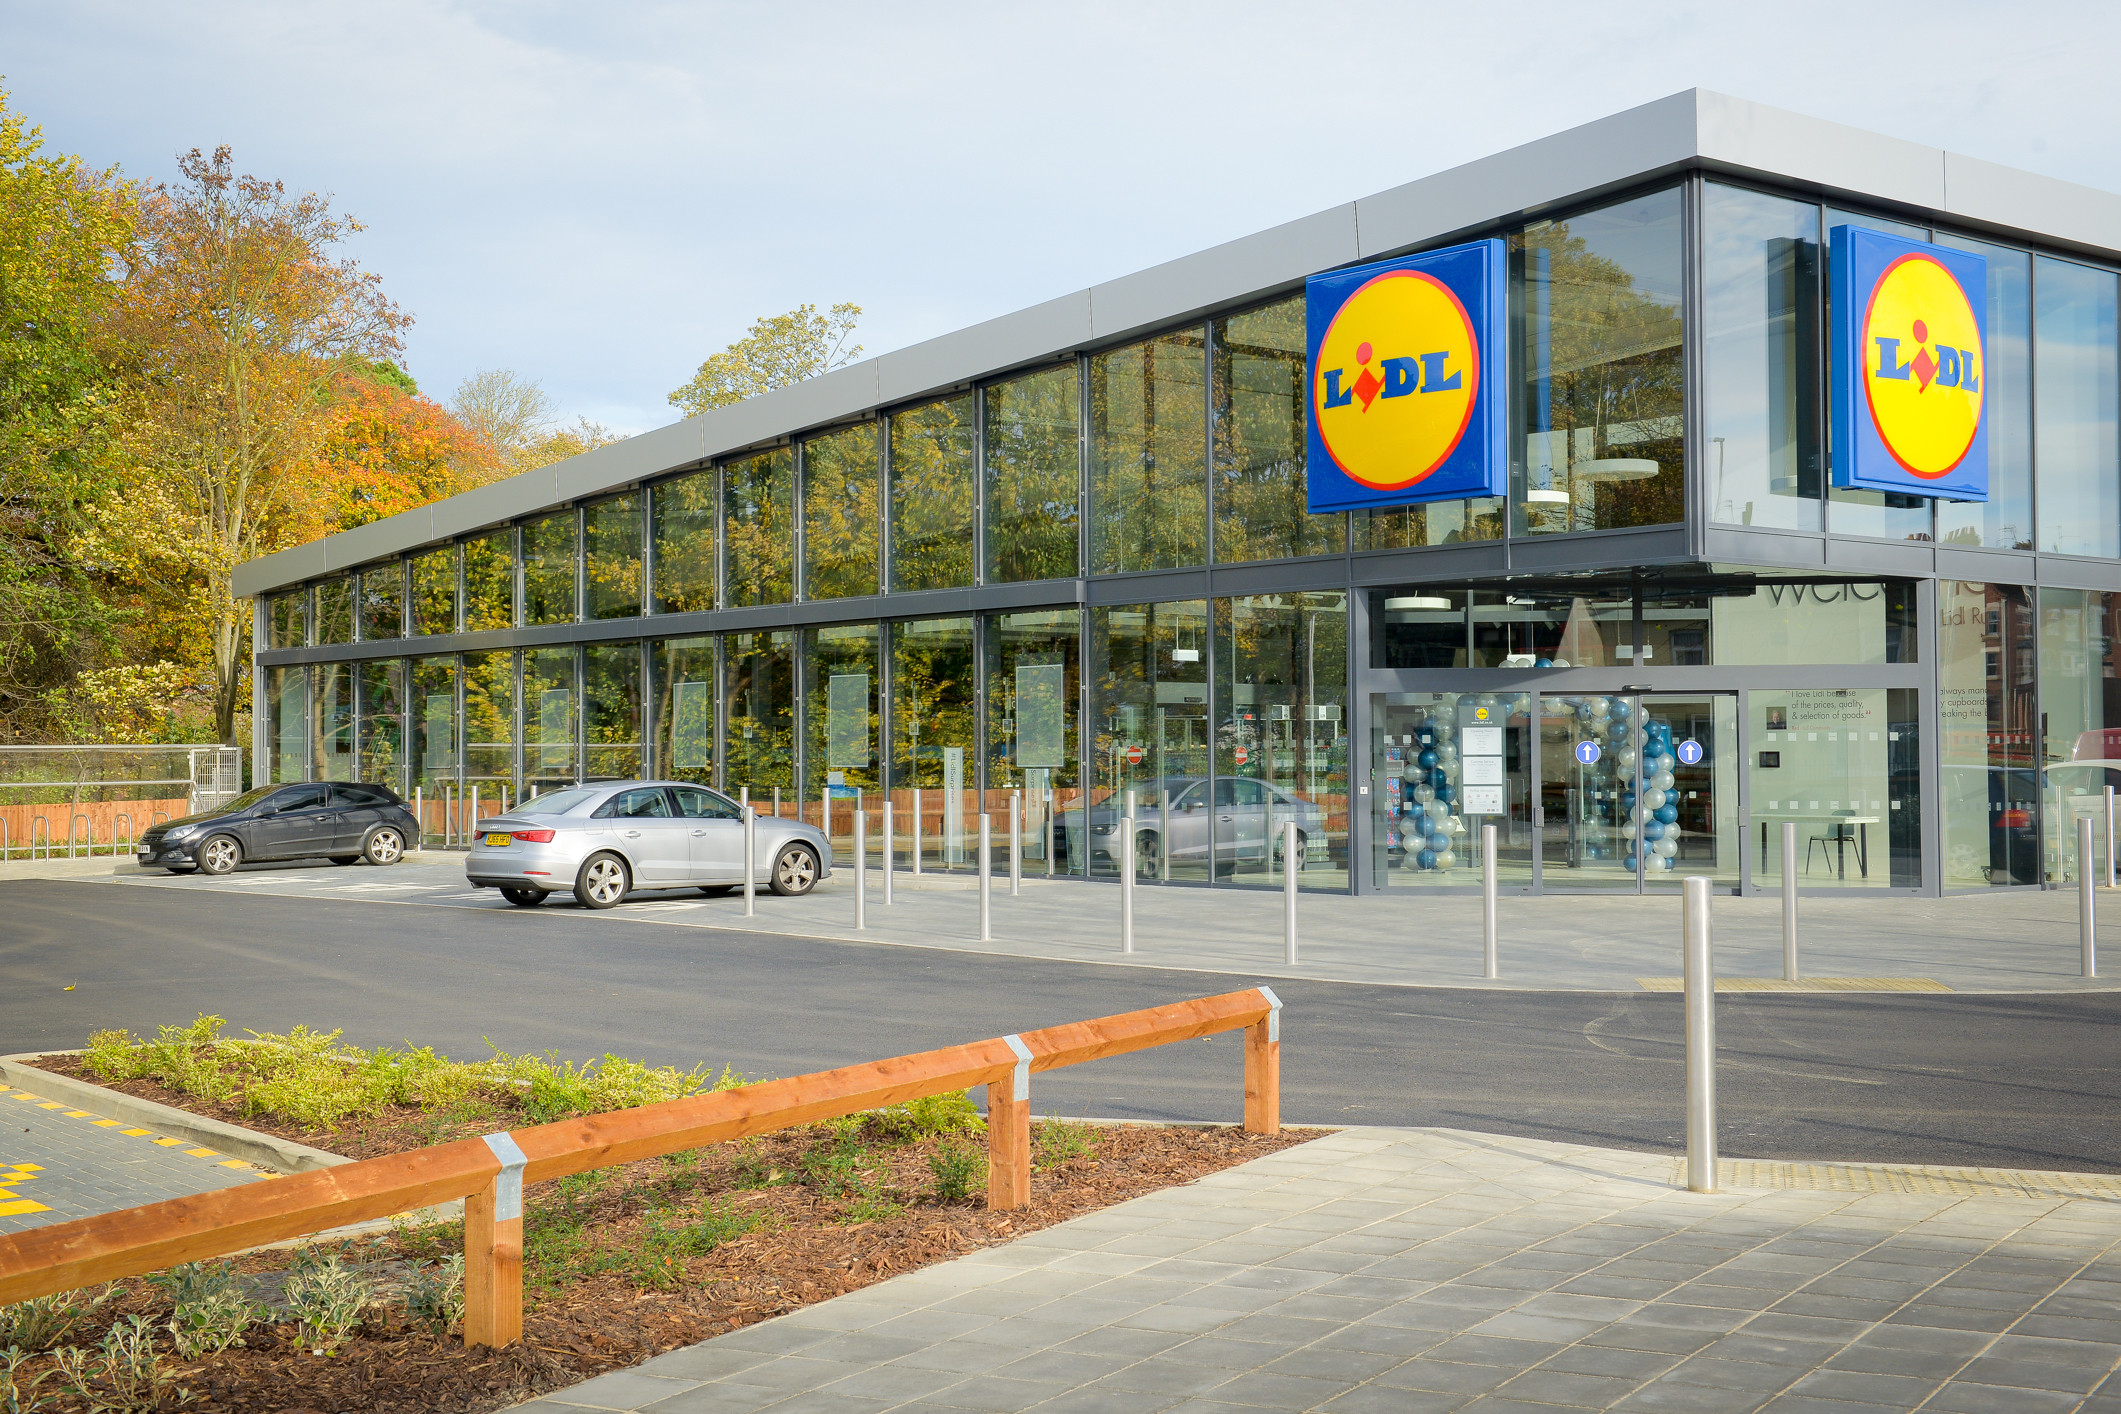 Lidl is opening a new store